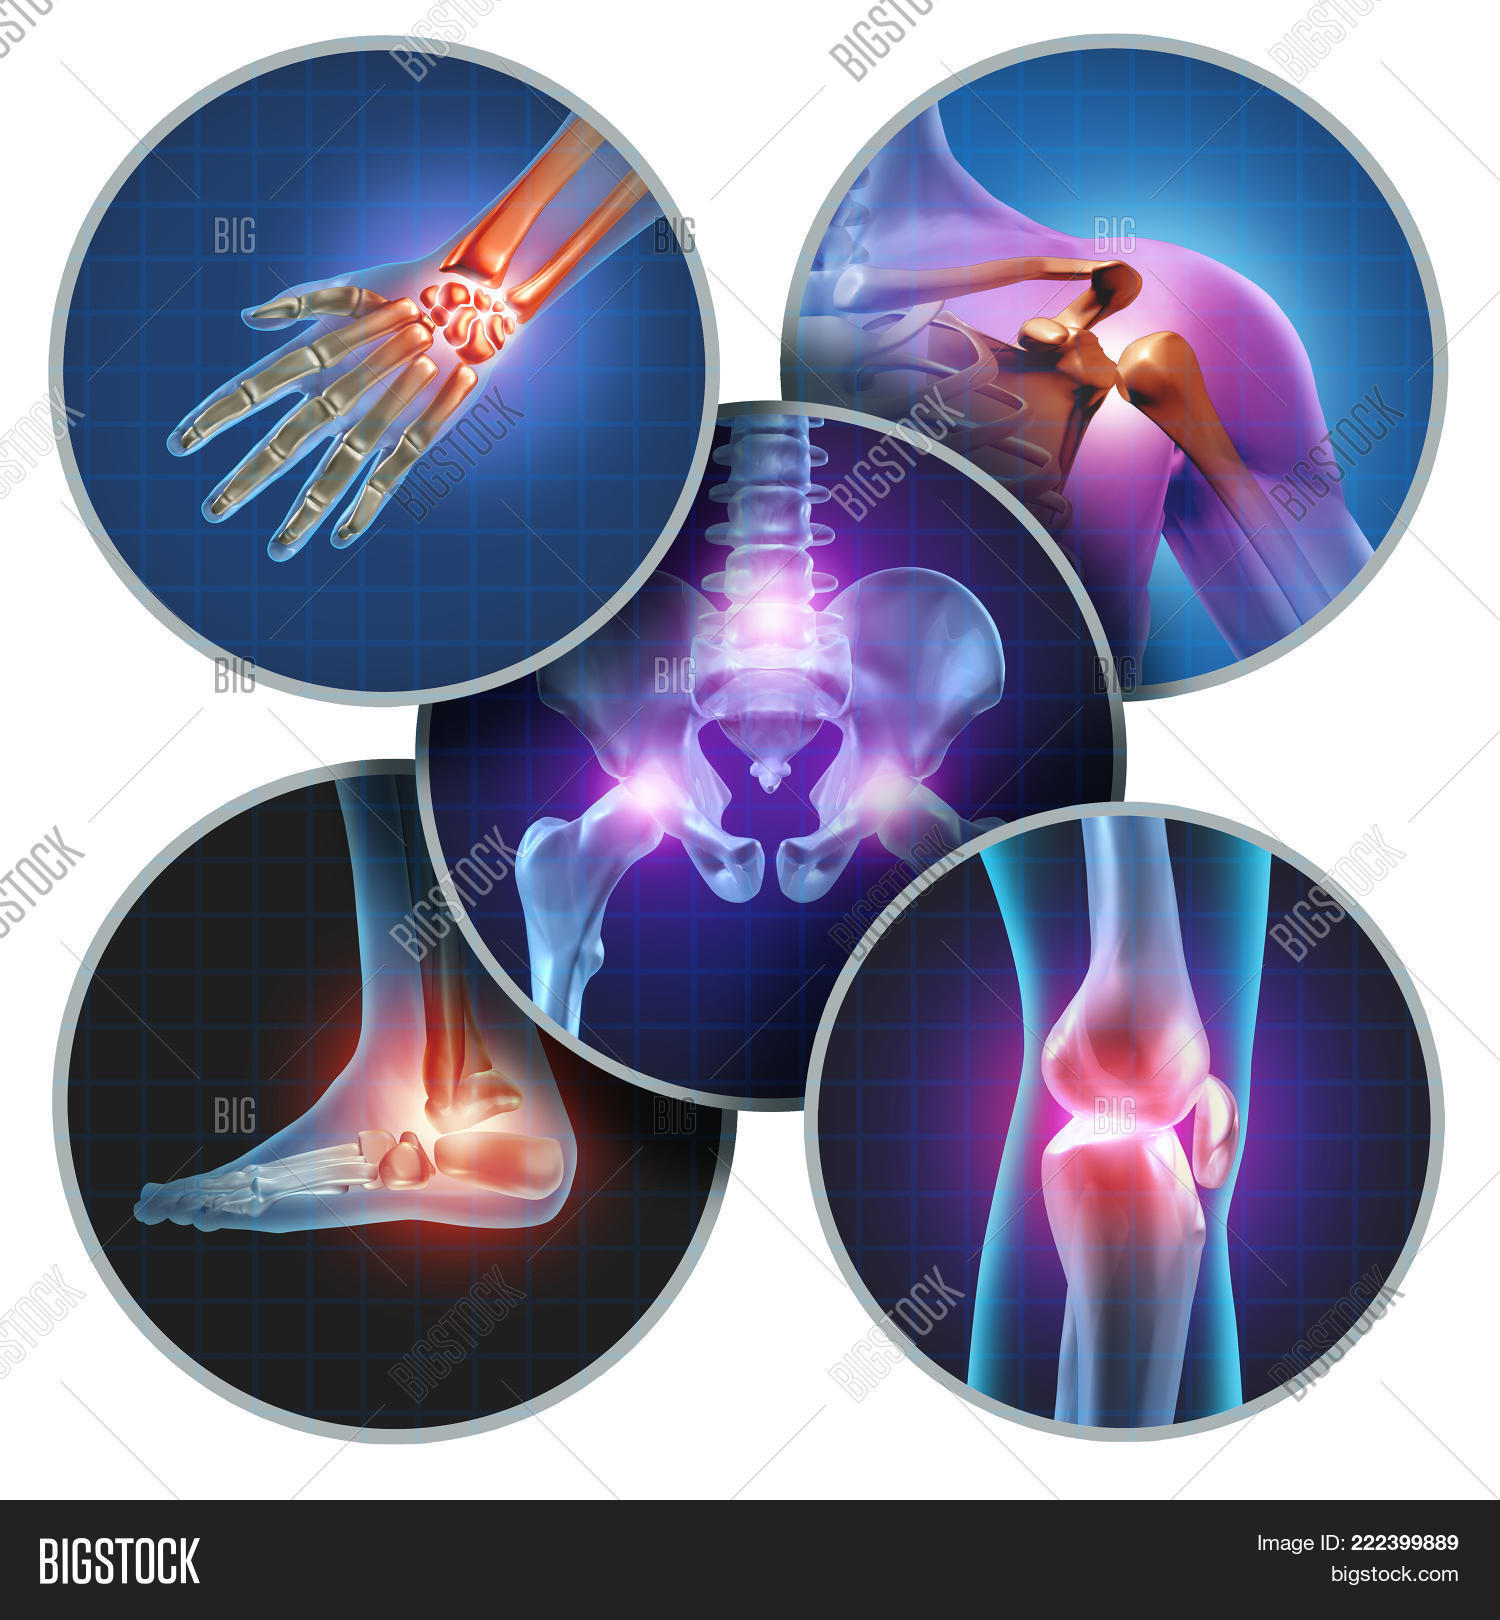 3D,ache,anatomicalcartilage,anatomy,arthritis,body,bone,elements,femur,foot,hand,hurt,illness,illustration,inflammation,injury,joint,knee,ligament,medical,medicinal,medicine,muscle,osteoporosis,pain,painful,patella,physical,shoulder,skeleton,spine,suffering,therapy,x-ray